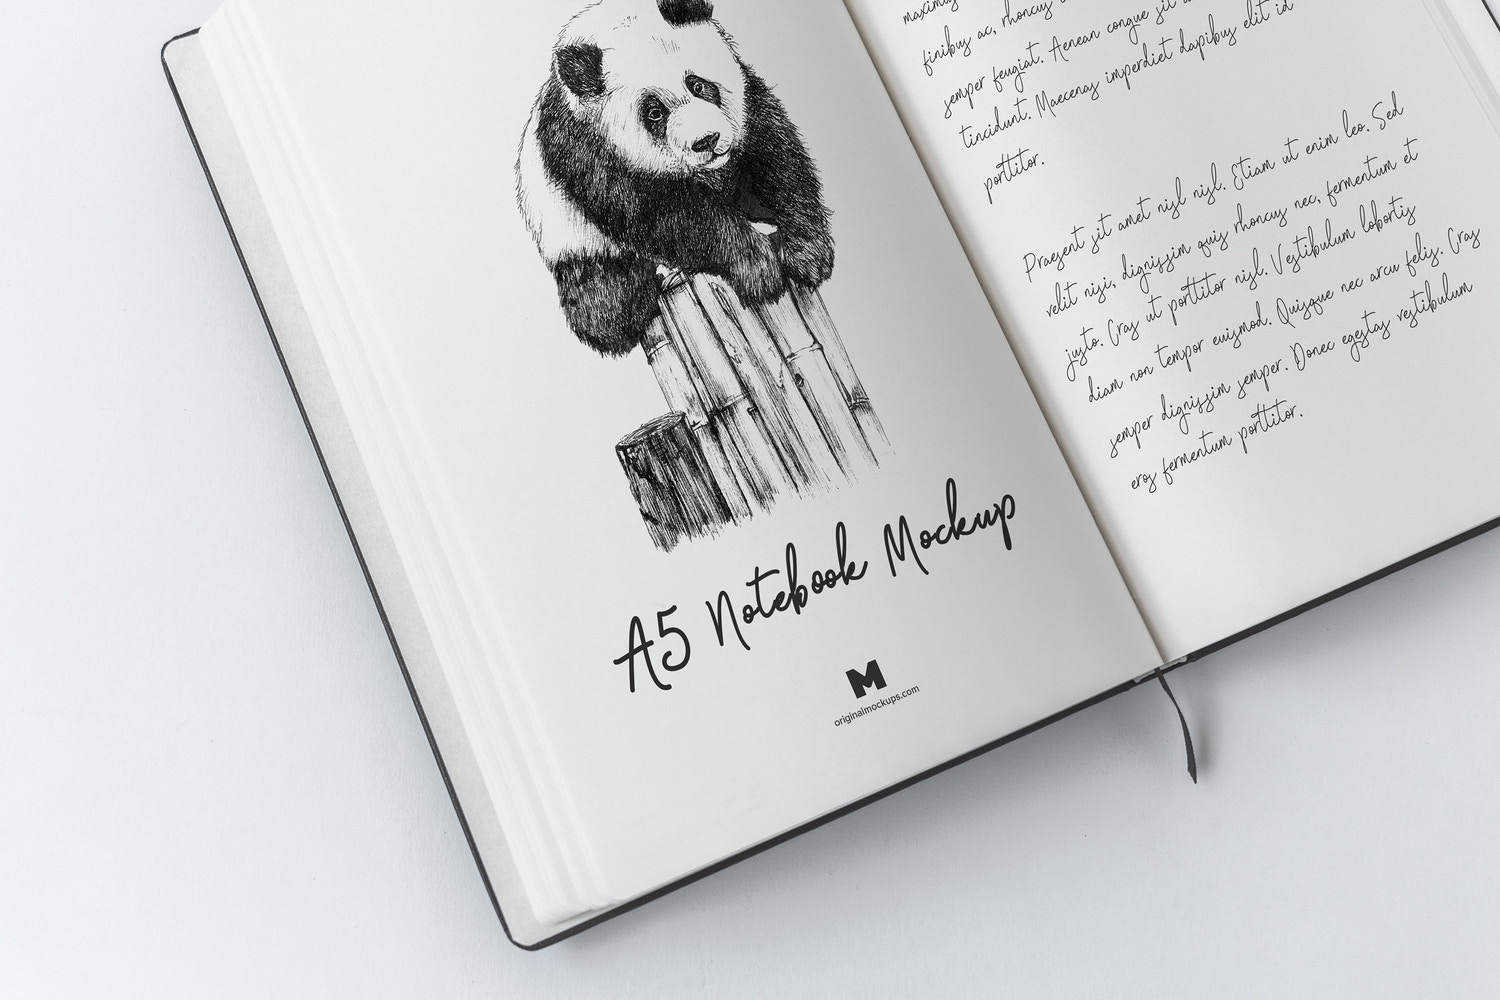 A5 Hardcover Notebook Mockup 02 by Original Mockups on Original Mockups